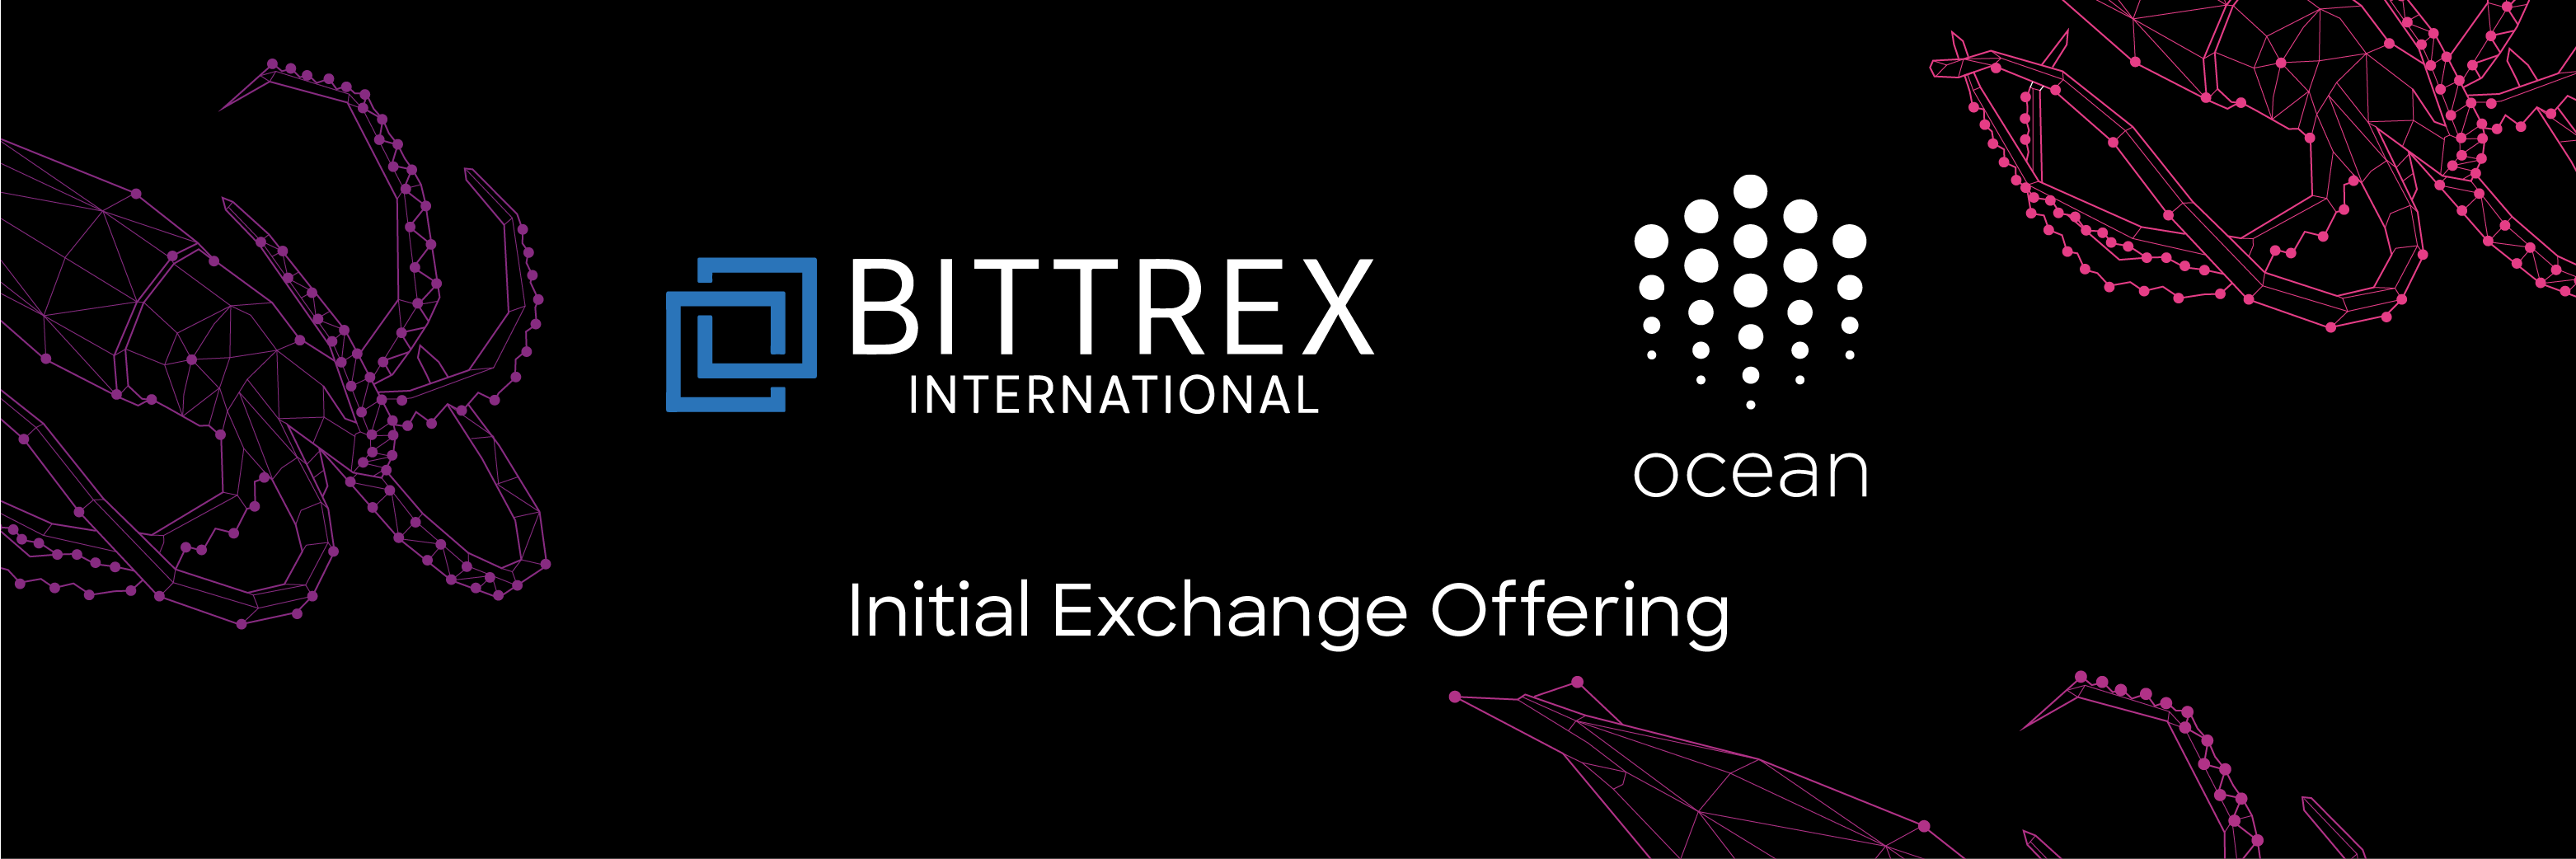 Initial Exchange Offering of Ocean Protocol on Bittrex